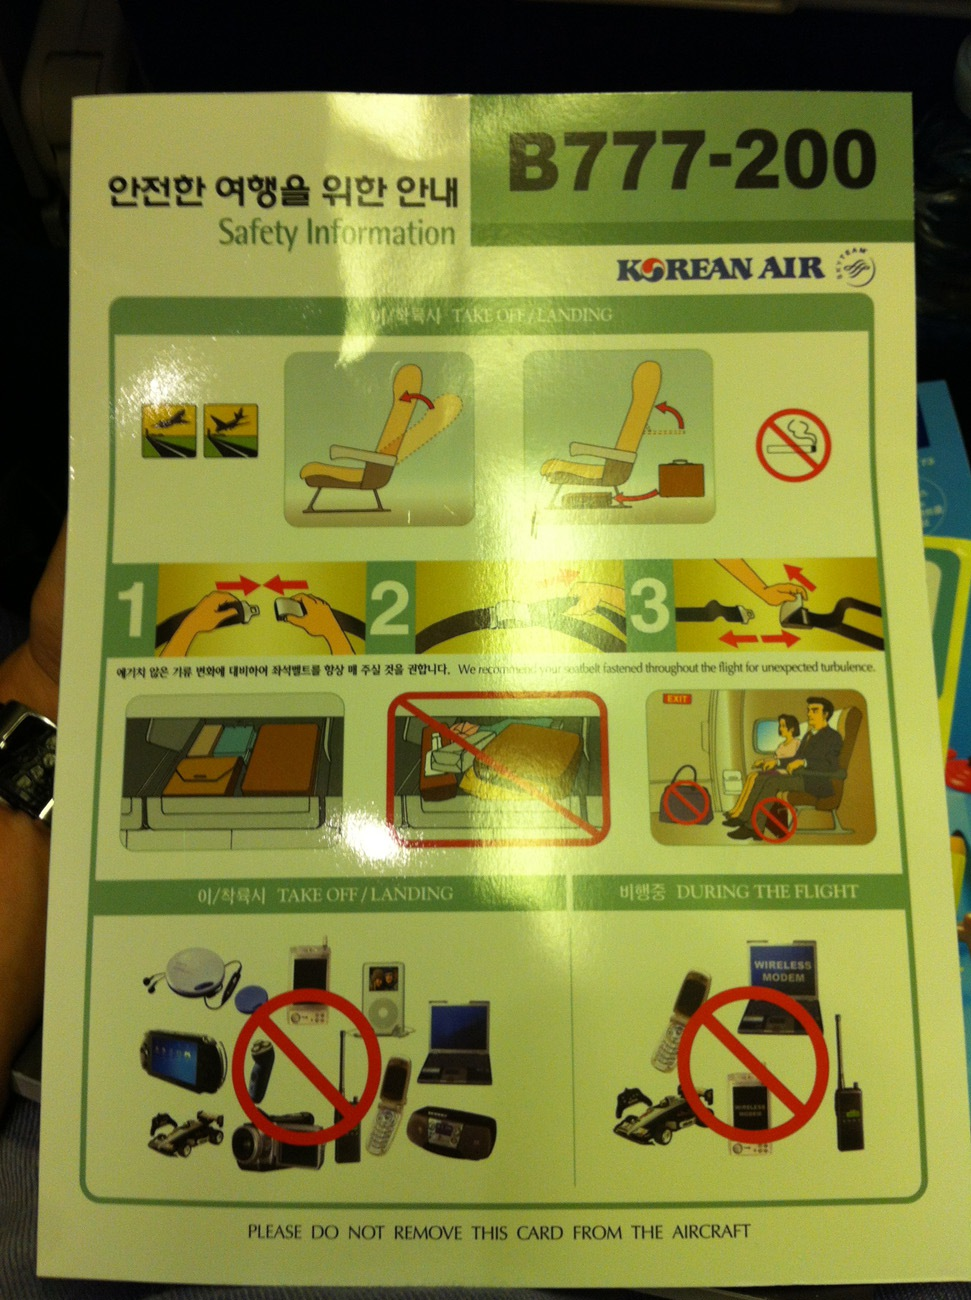 Flight safety card of Korean Air